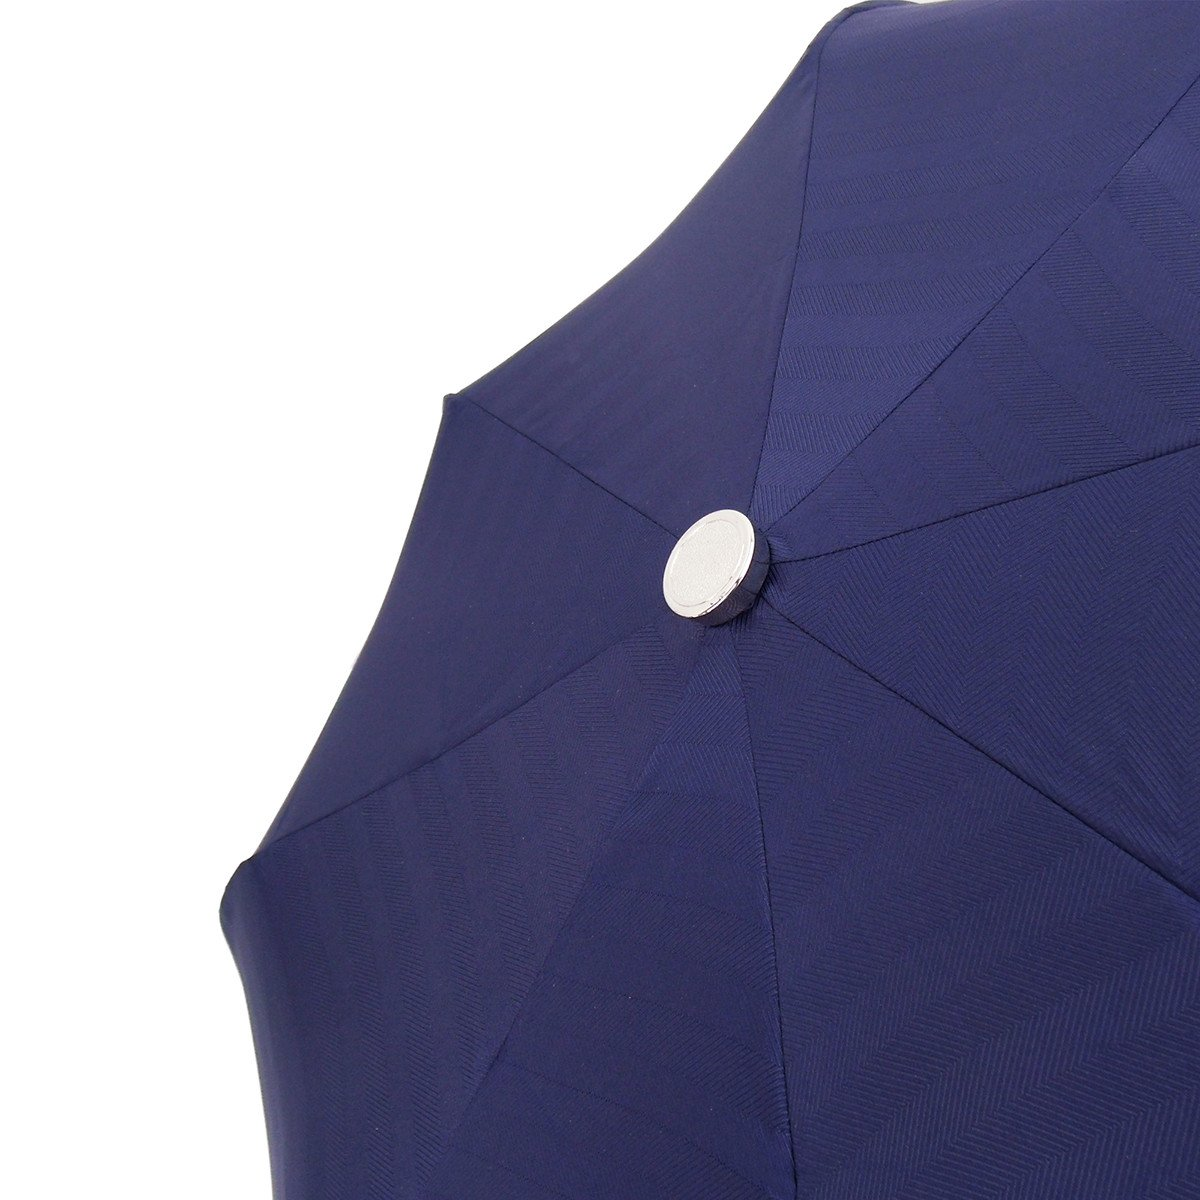 Handmade Men's Compact Umbrella in a Blue Color - il-marchesato